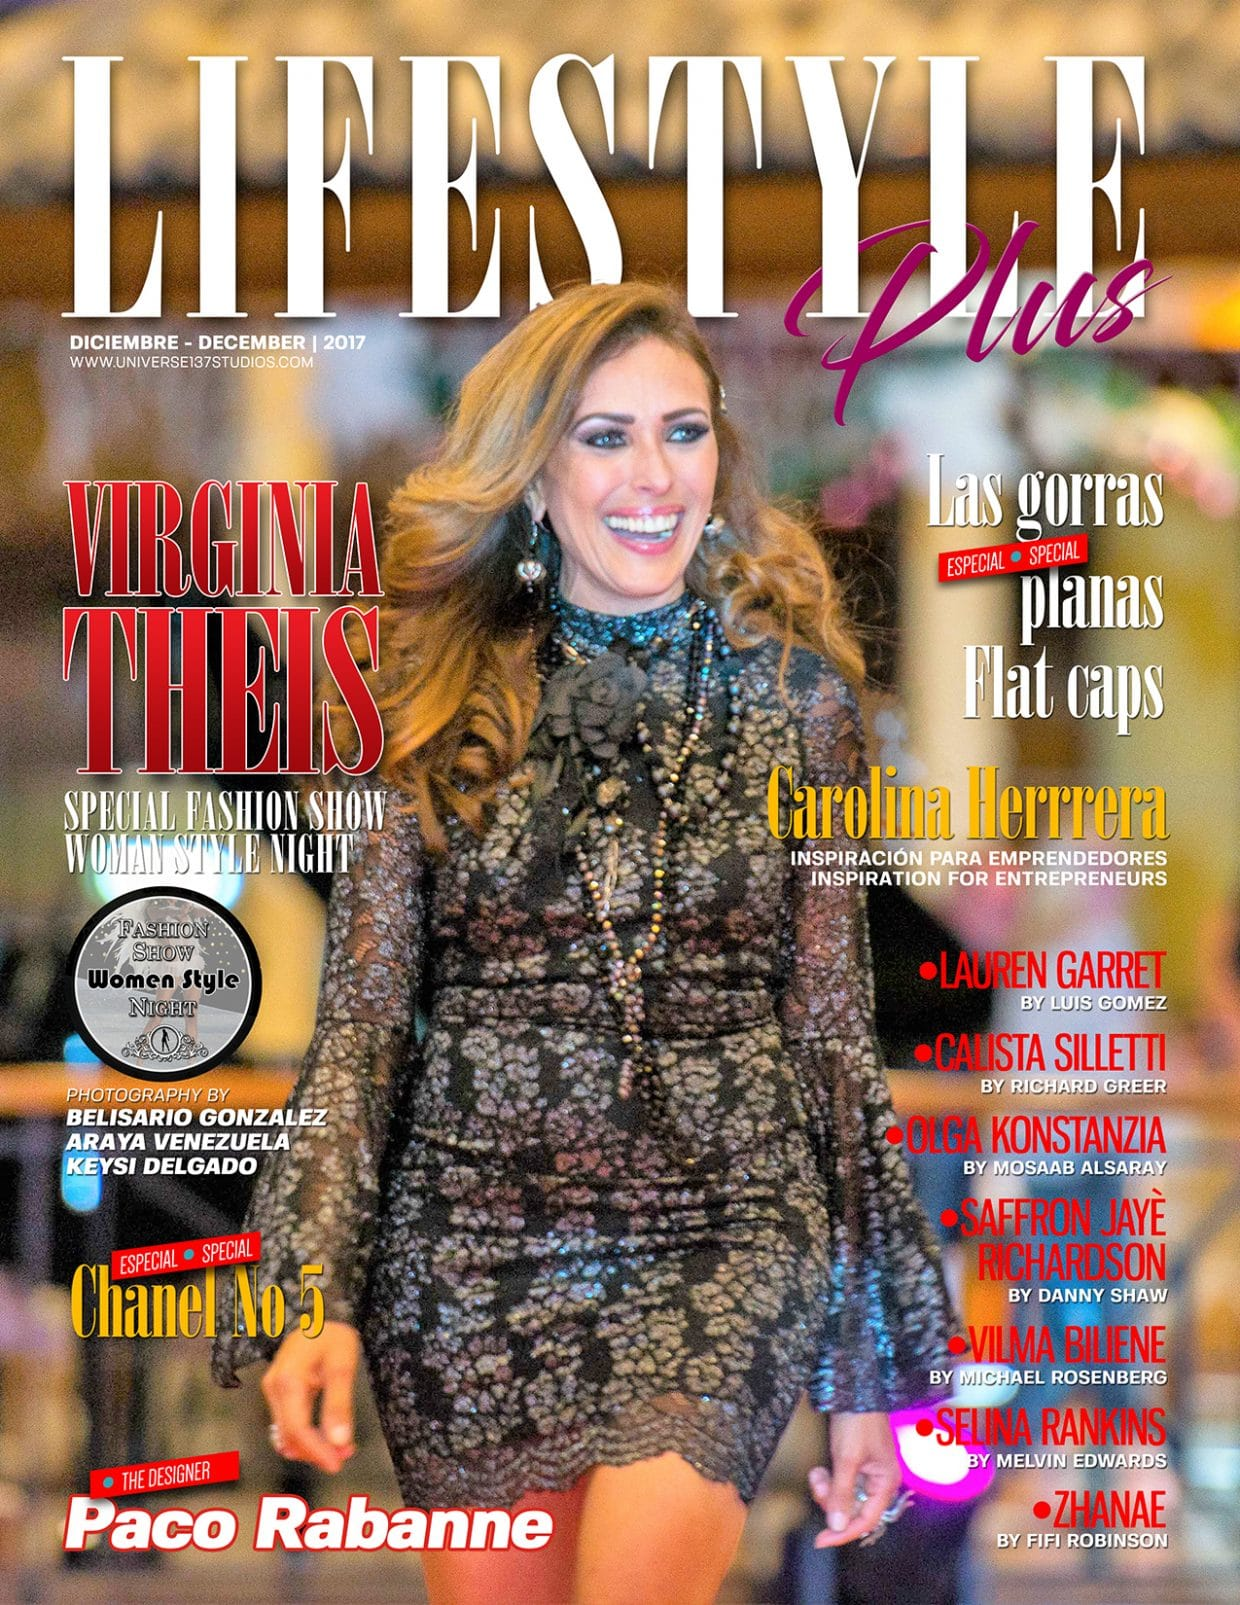 Lifestyle Plus Magazine - December 2017 1